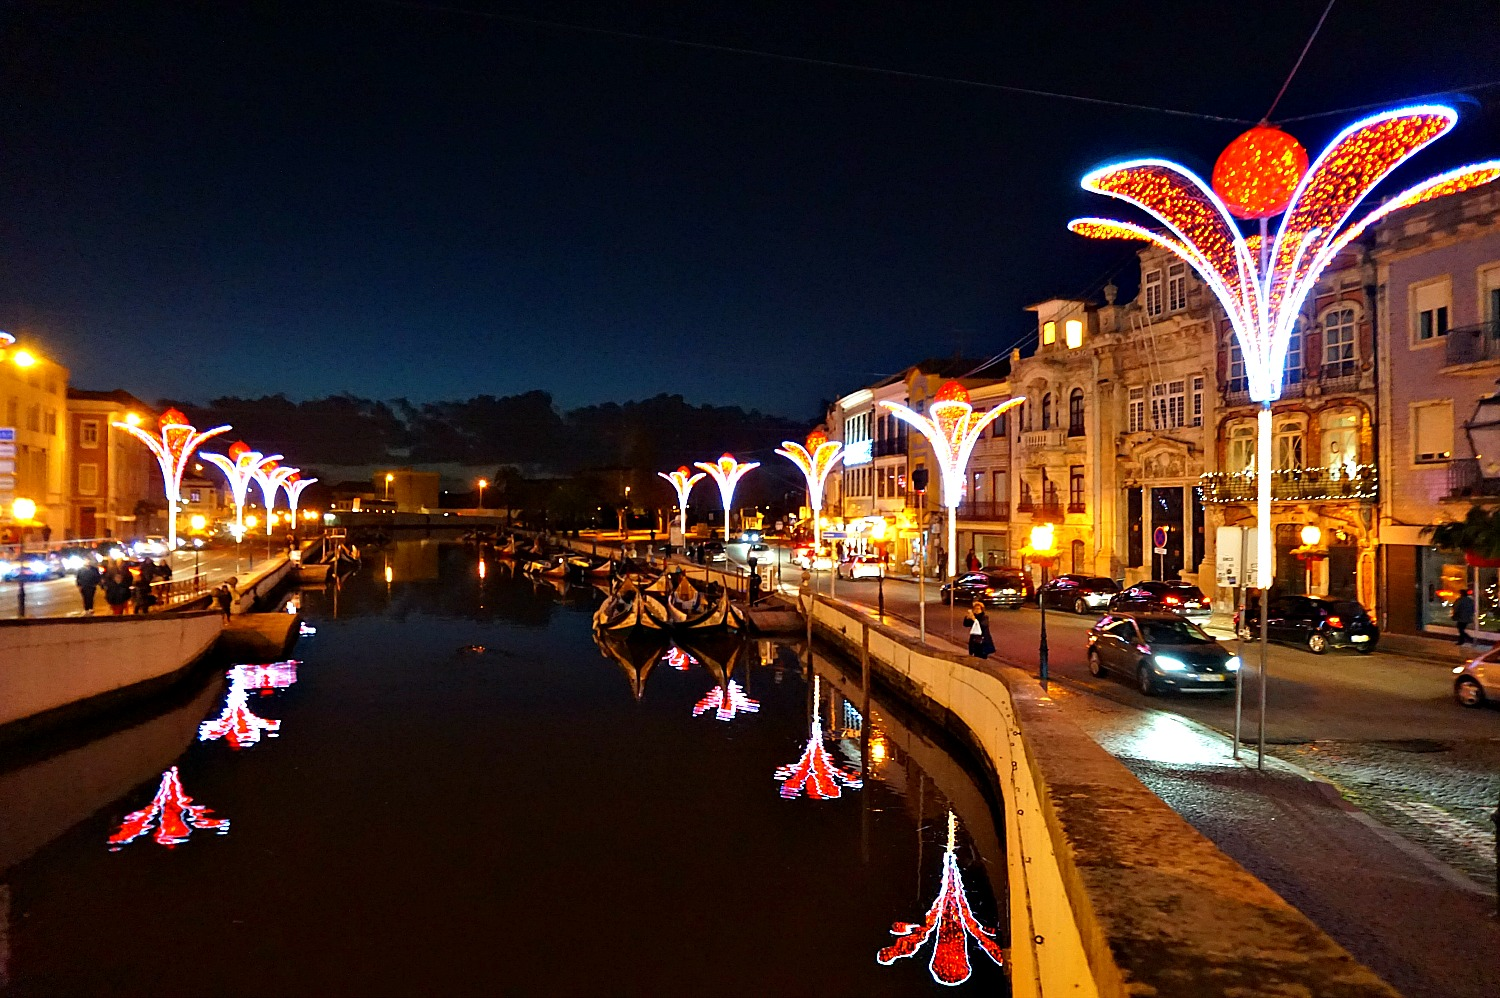 Portugal - one week itinerary. Canals, gondolas, Christmas lights - Aveiro is the place to visit during Christmas season.